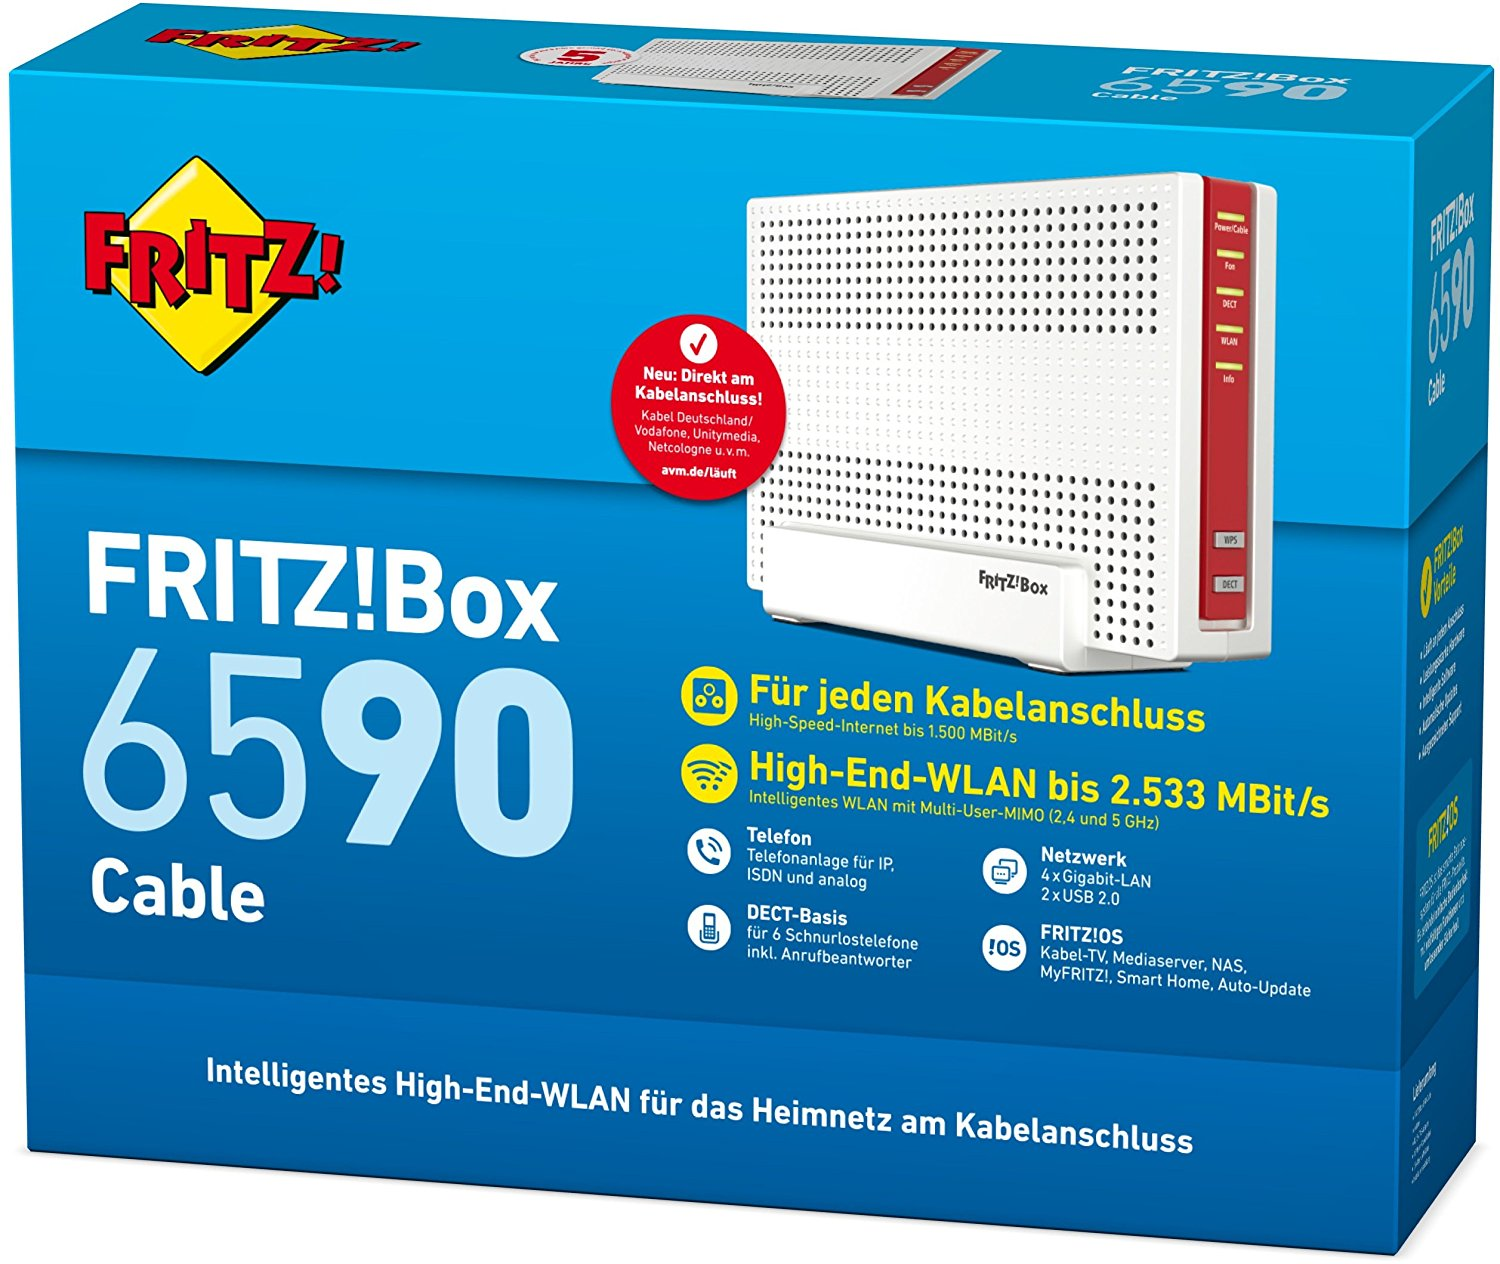 AVM FRITZ!Box 6590 Cable Kabel-WLAN-Router